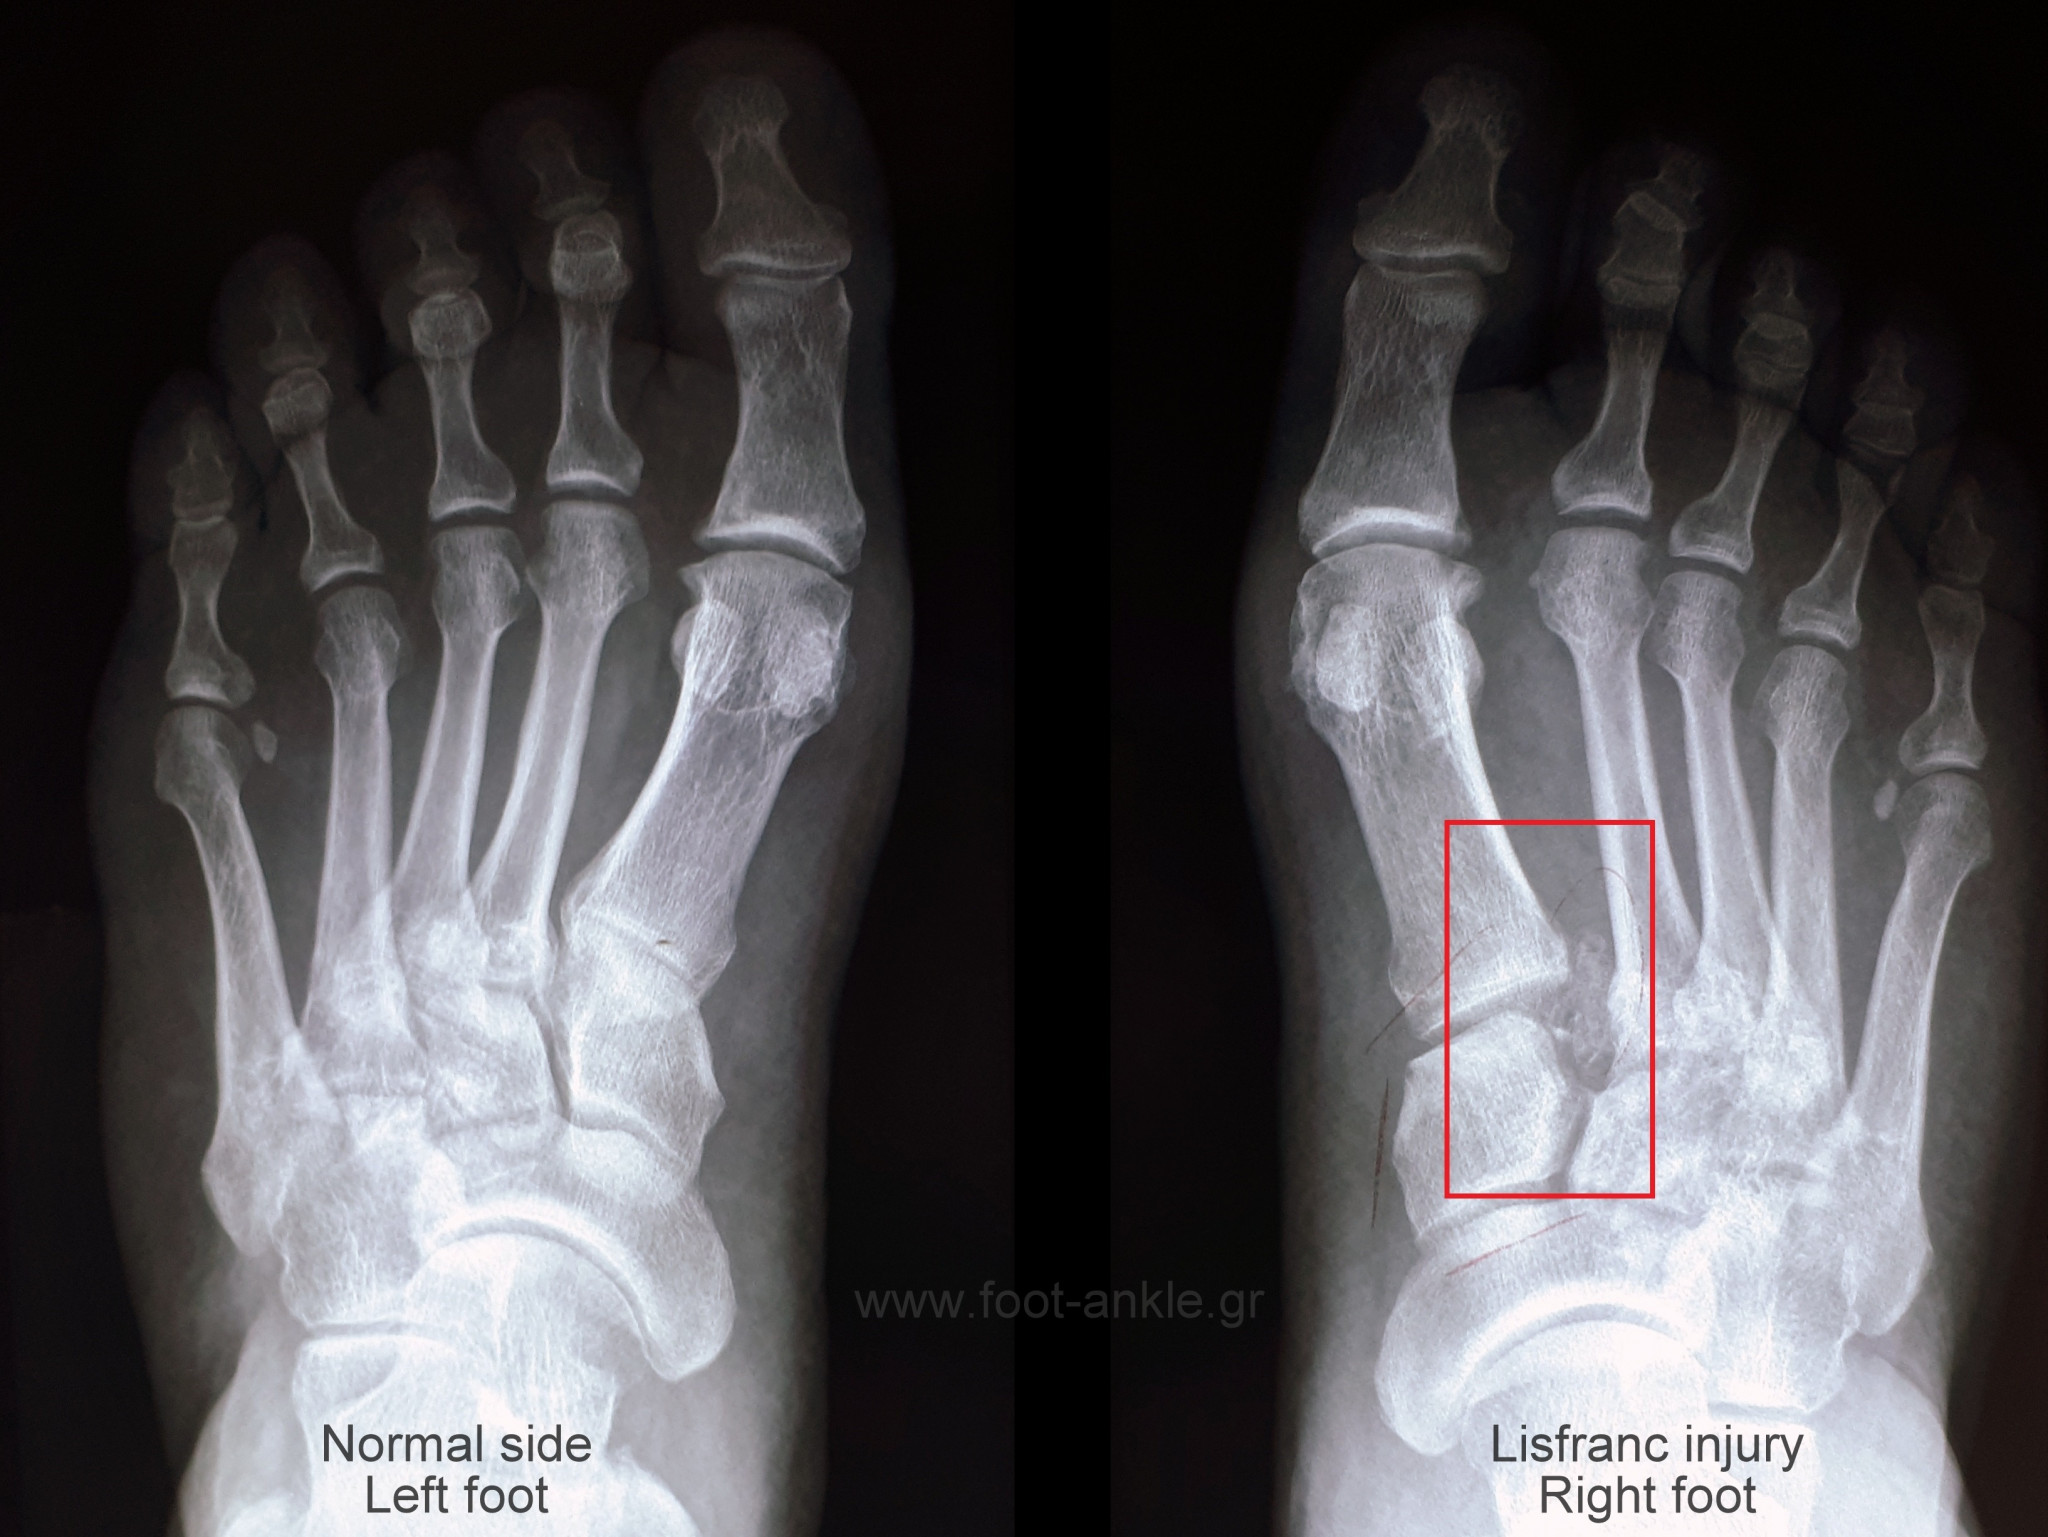 Lisfranc injury. Comparative weight bearing radiographs XRays showing a Lisfranc injury of the right foot (red box)